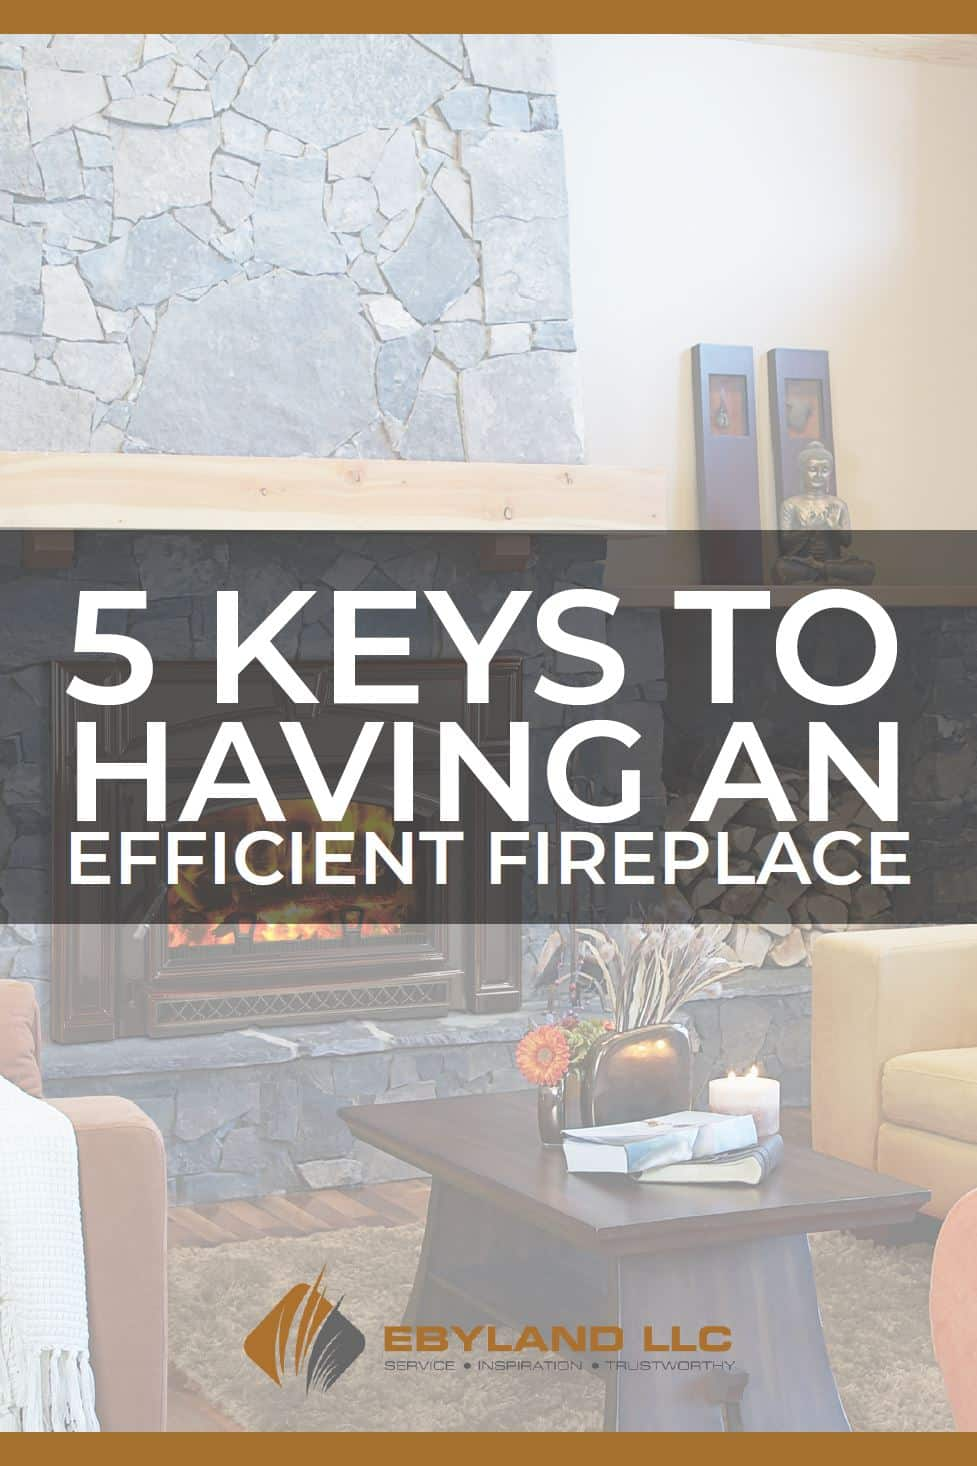 5 keys to an efficient fireplace e-book cover